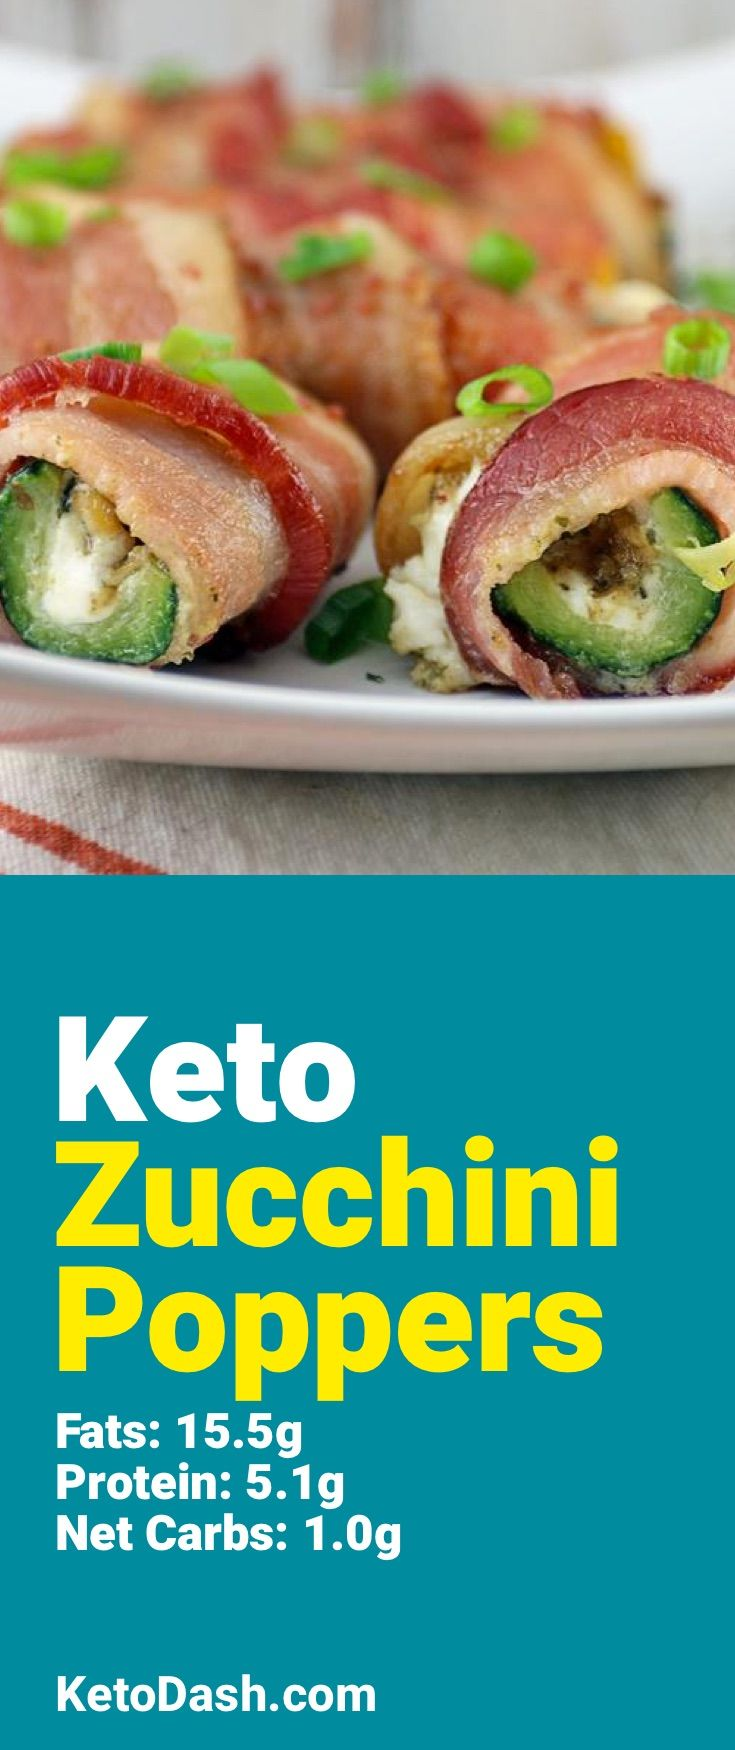 Trying this Zucchini Poppers and it is delicious. What a great keto recipe. #keto #ketorecipes #lowcarb #lowcarbrecipes #healthyeating #healthyrecipes #diabeticfriendly #lowcarbdiet #ketodiet #ketogenicdiet